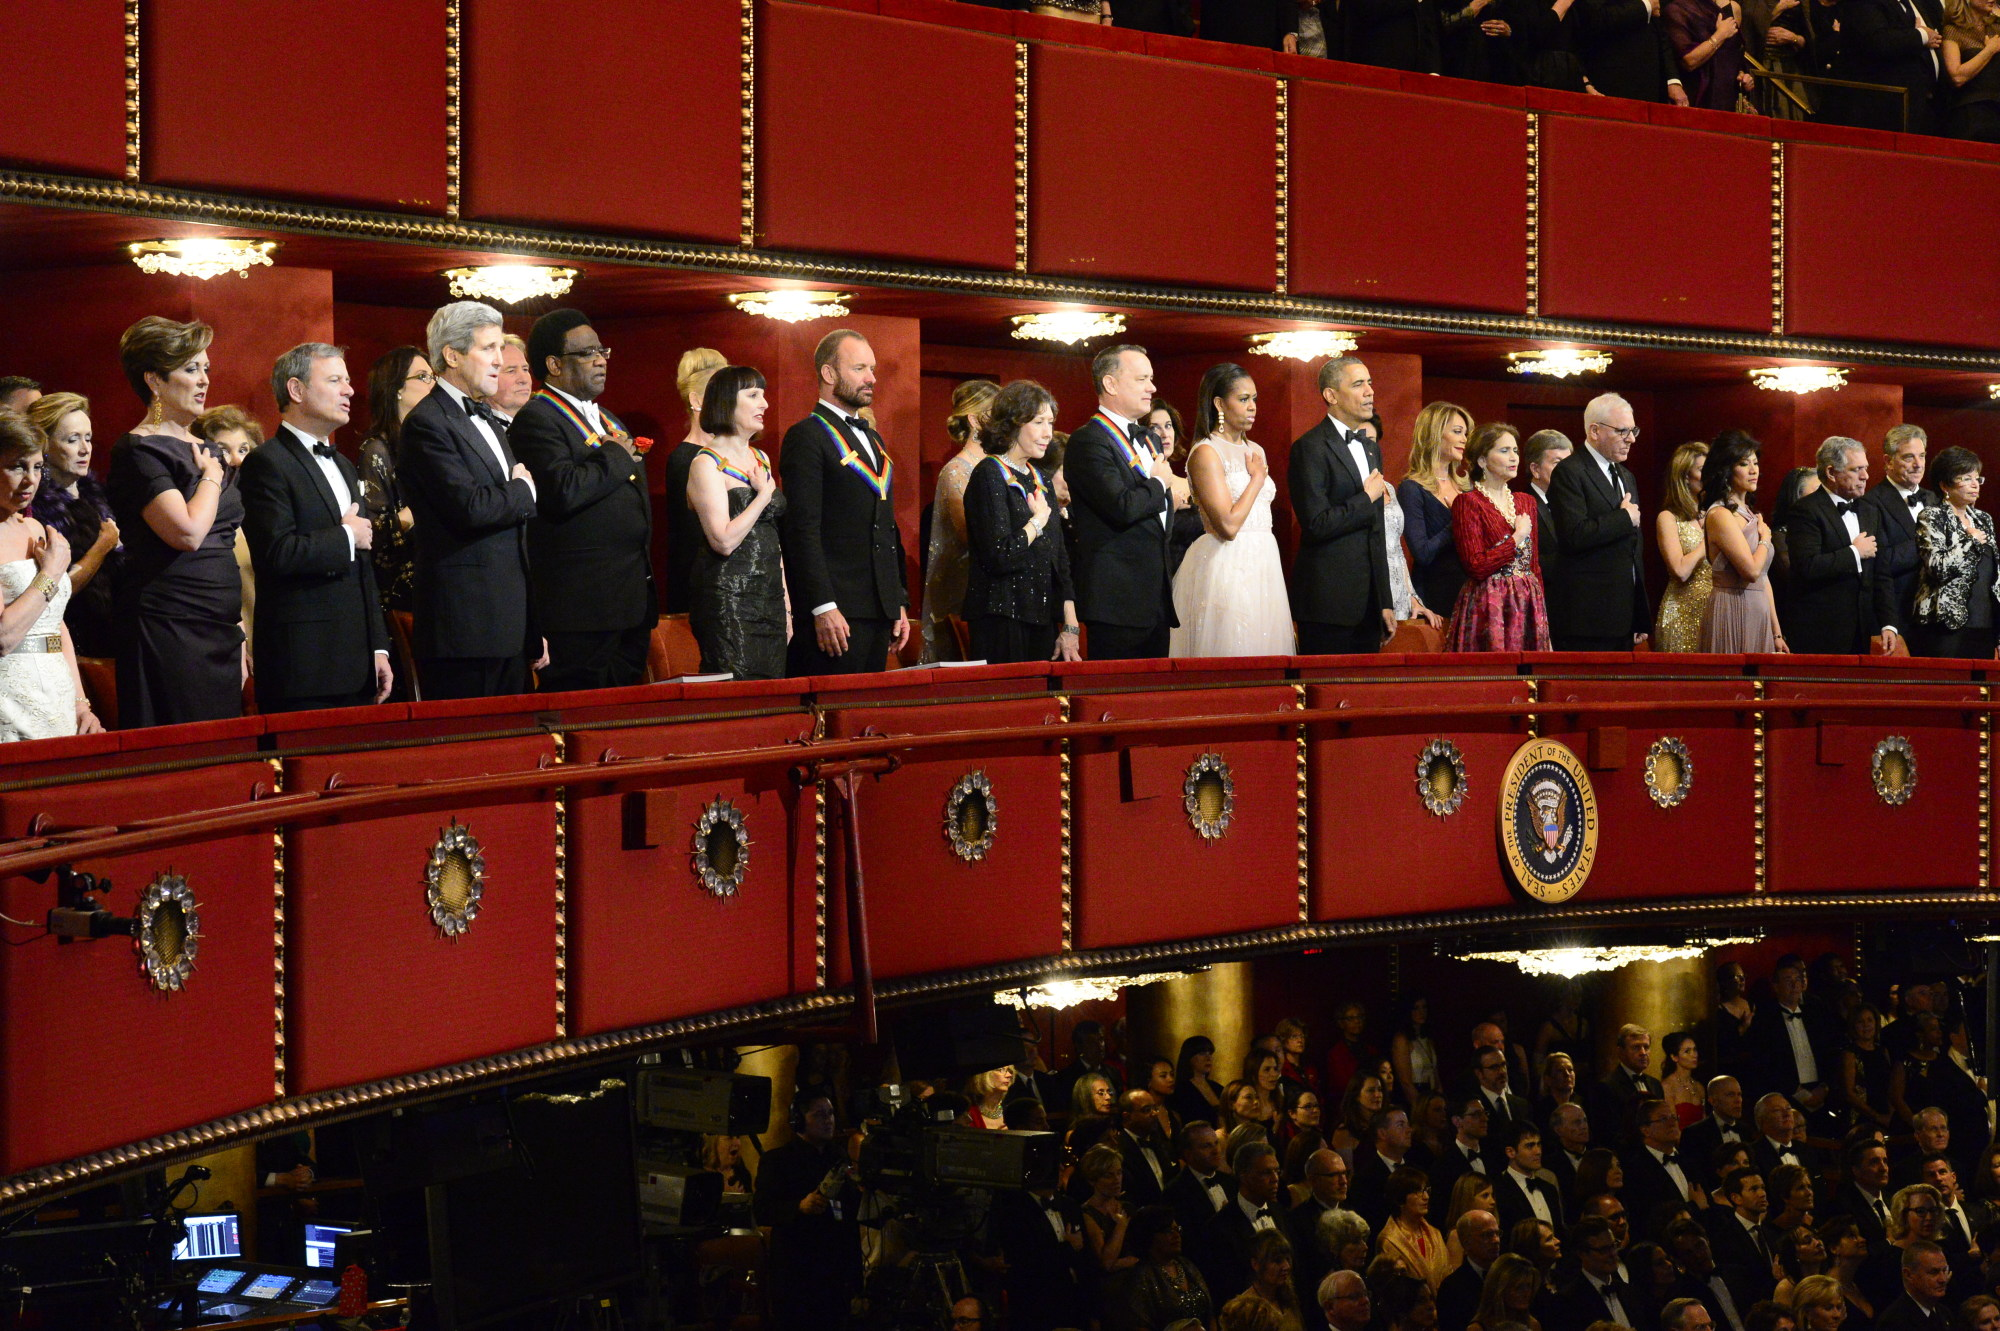 The VIP Section of 37th Annual Kennedy Center Honors